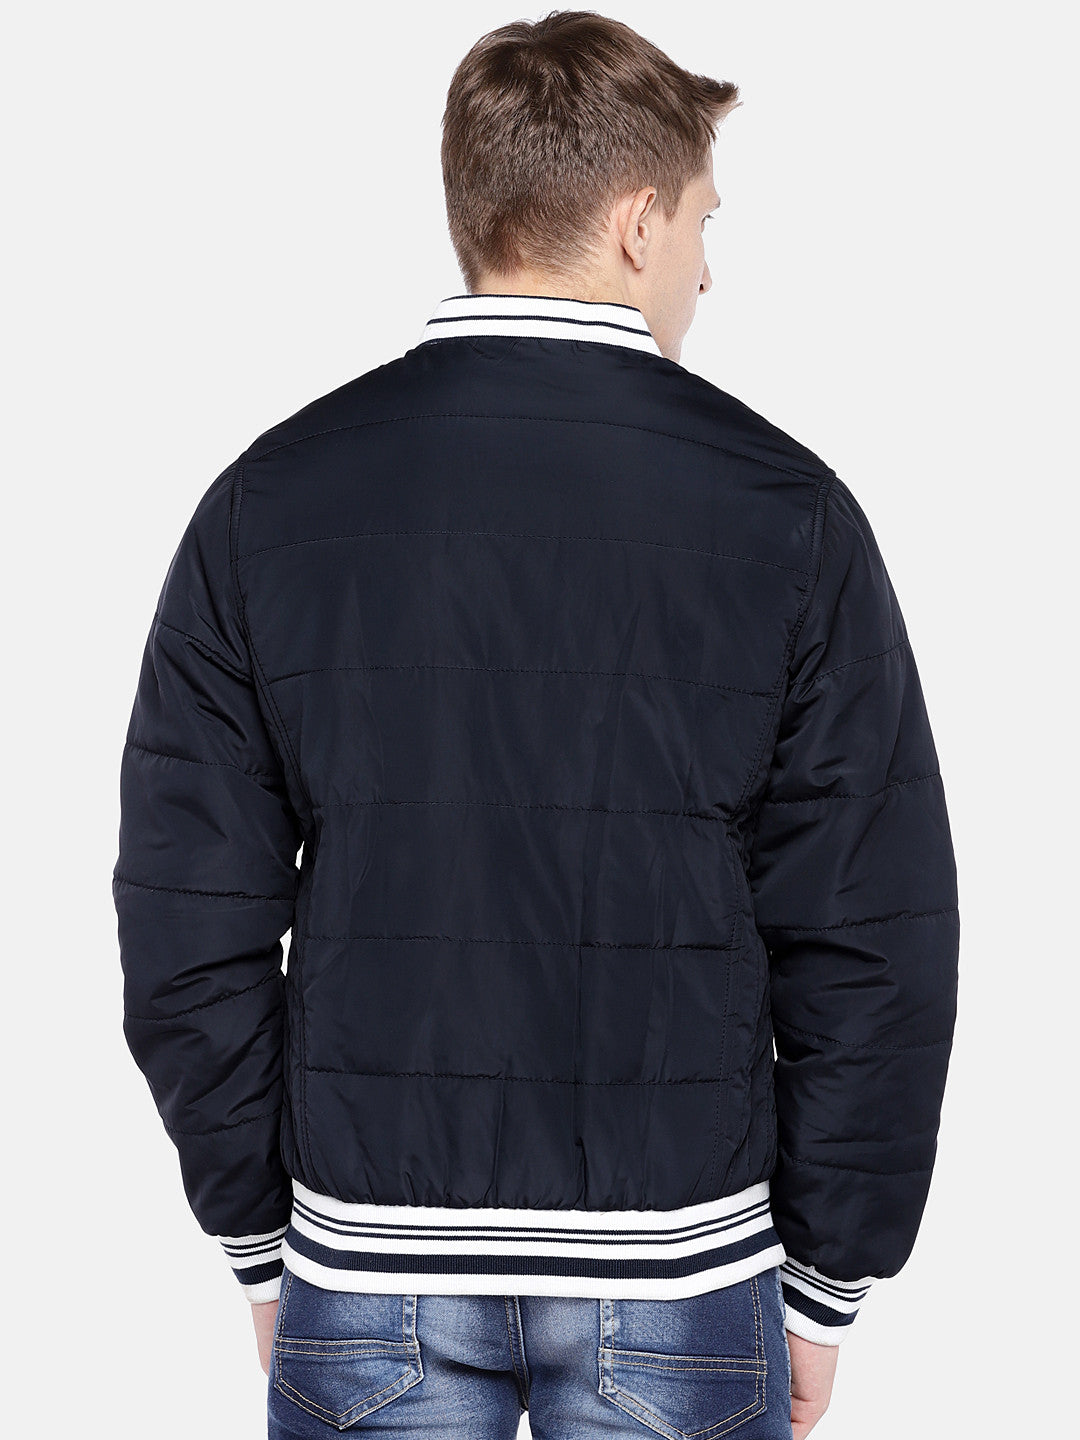 Navy Blue Solid Bomber-3